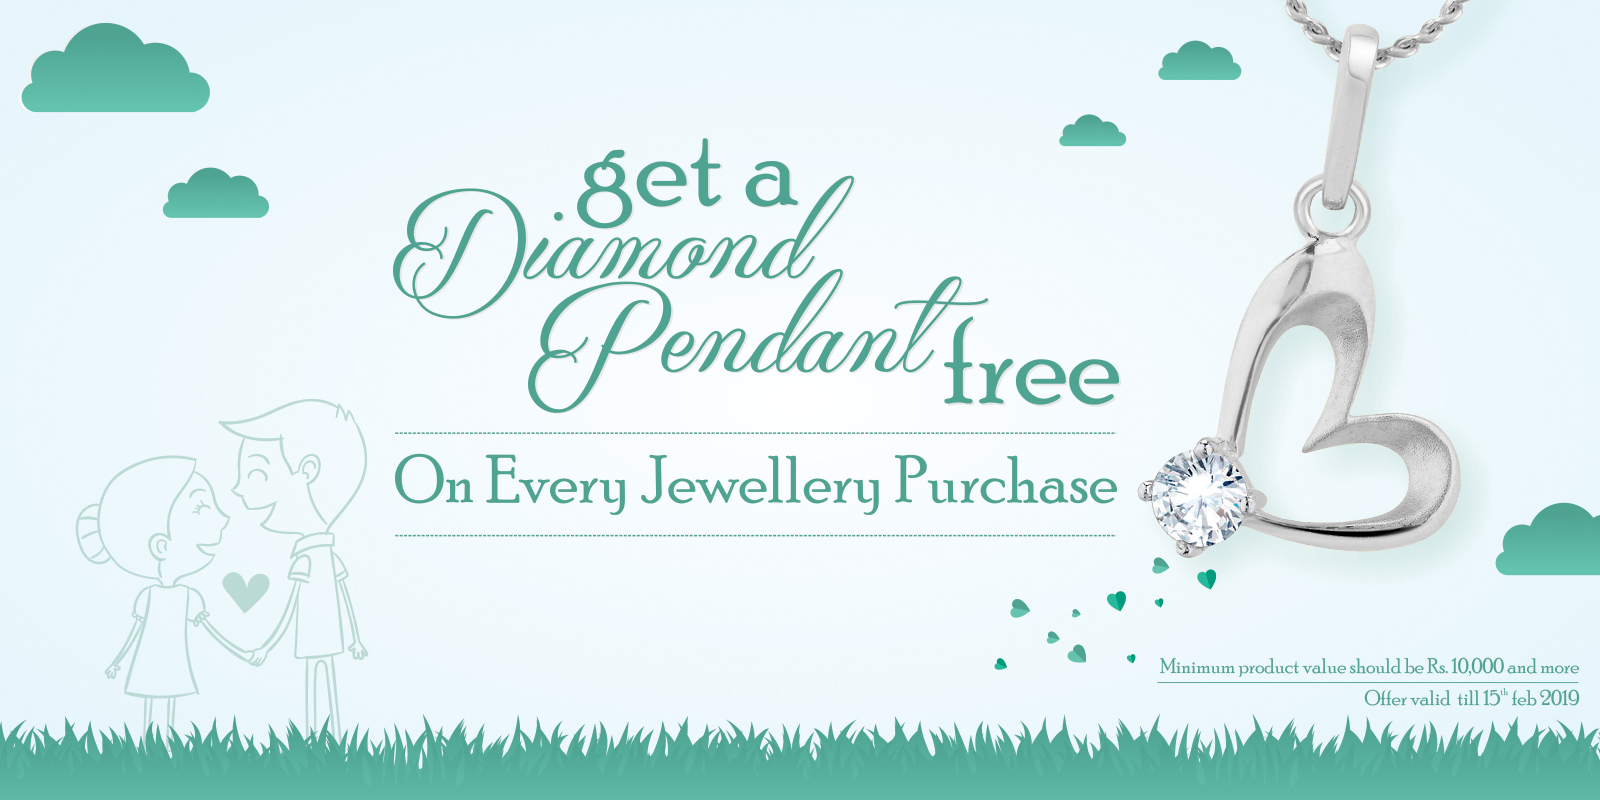 Get diamond pendent free on every purchase.